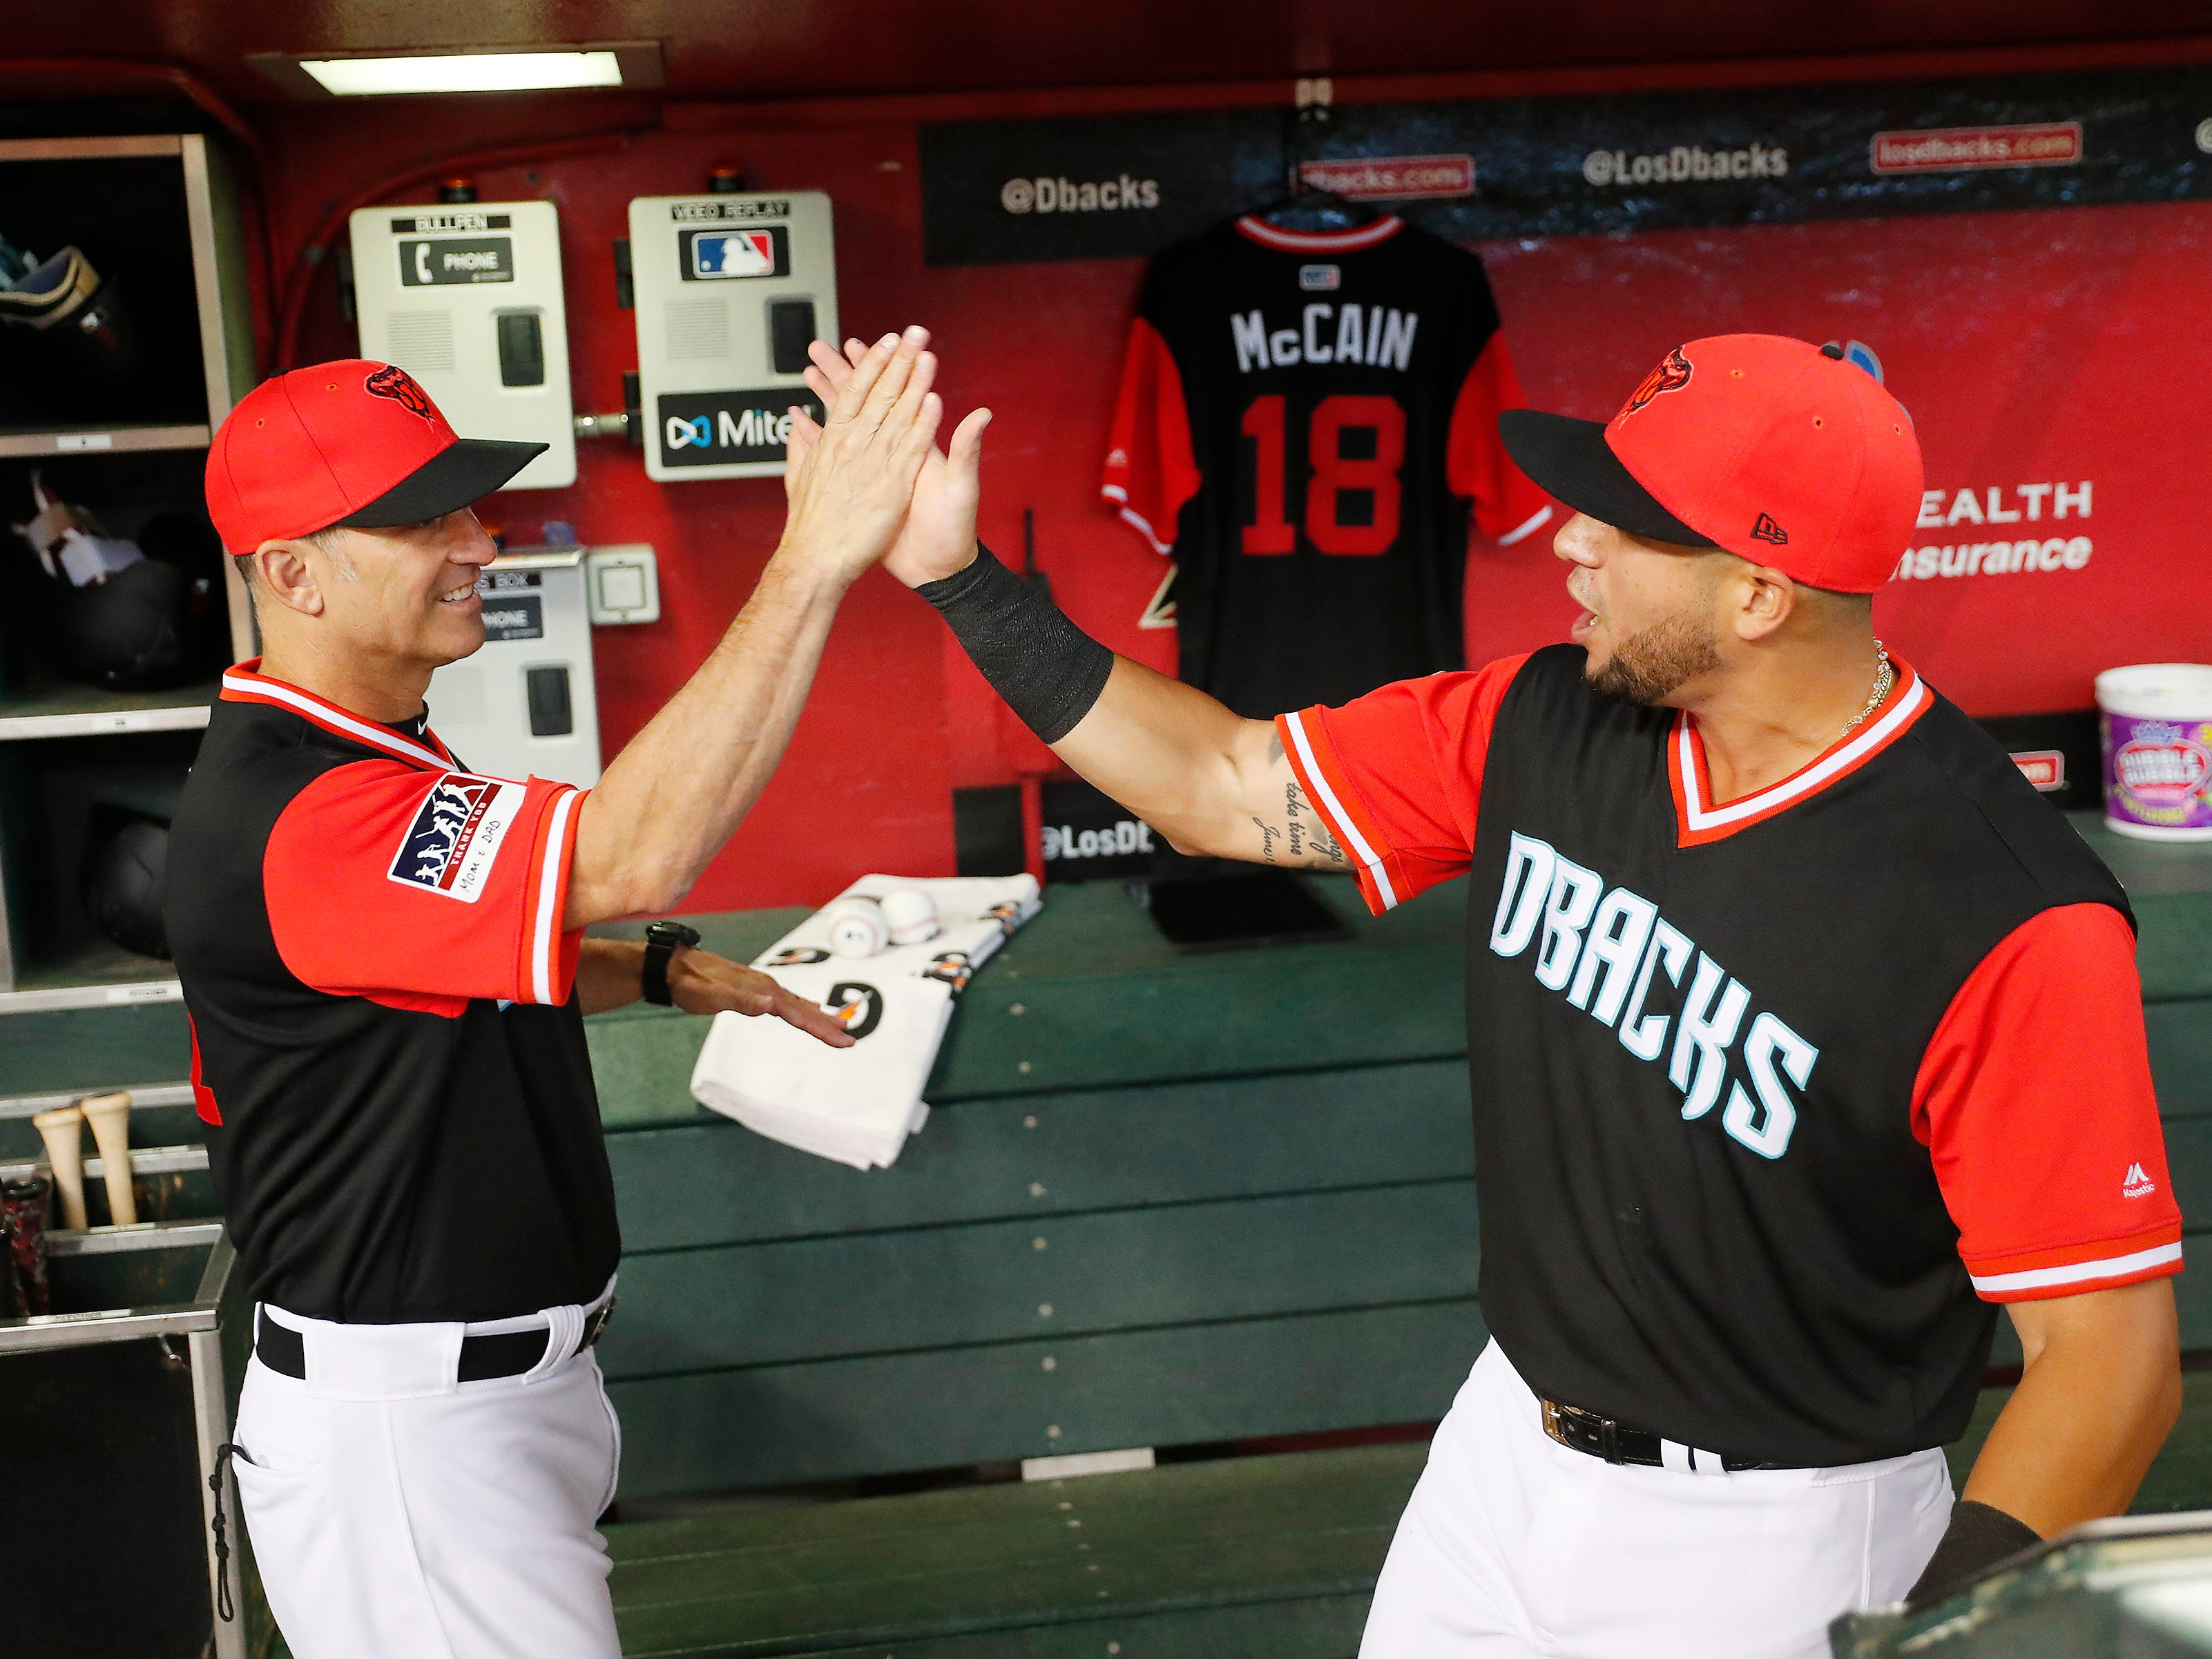 Arizona Diamondbacks manager Torey Lovullo (left0 and right fielder David Peralta slap hands in front of a jersey hanging in the dugout for Sen. John McCain before the playing against the Seattle Mariners at Chase Field in Phoenix, Ariz. August 26. 2018. The six-term Arizona senator died Saturday at age 81.